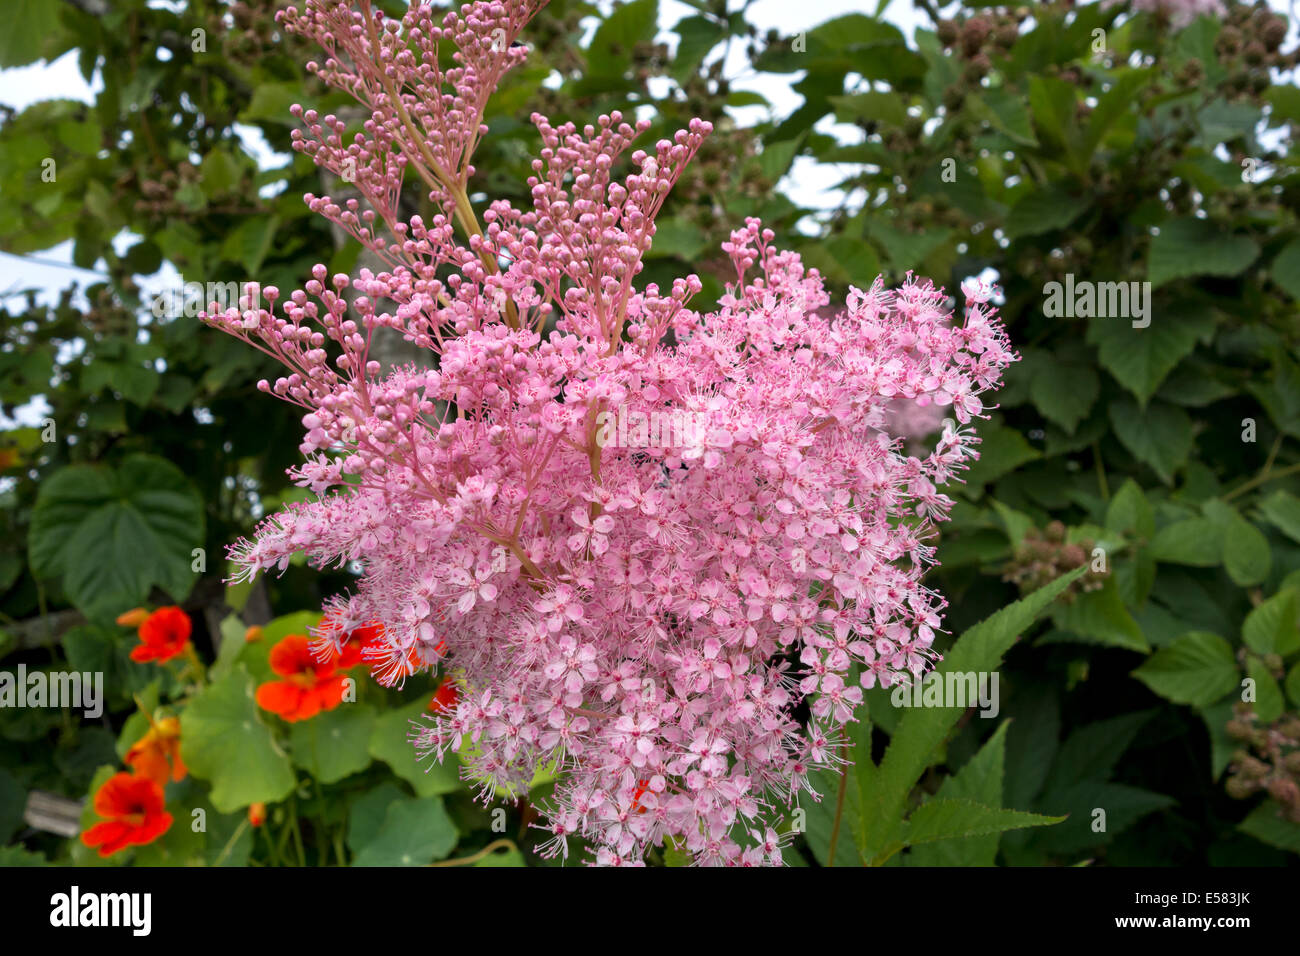 Perennial plants with small pink flowers stock photos perennial delicate small pink flowers of the filipendula rubra venusta plant growing in the garden stock mightylinksfo